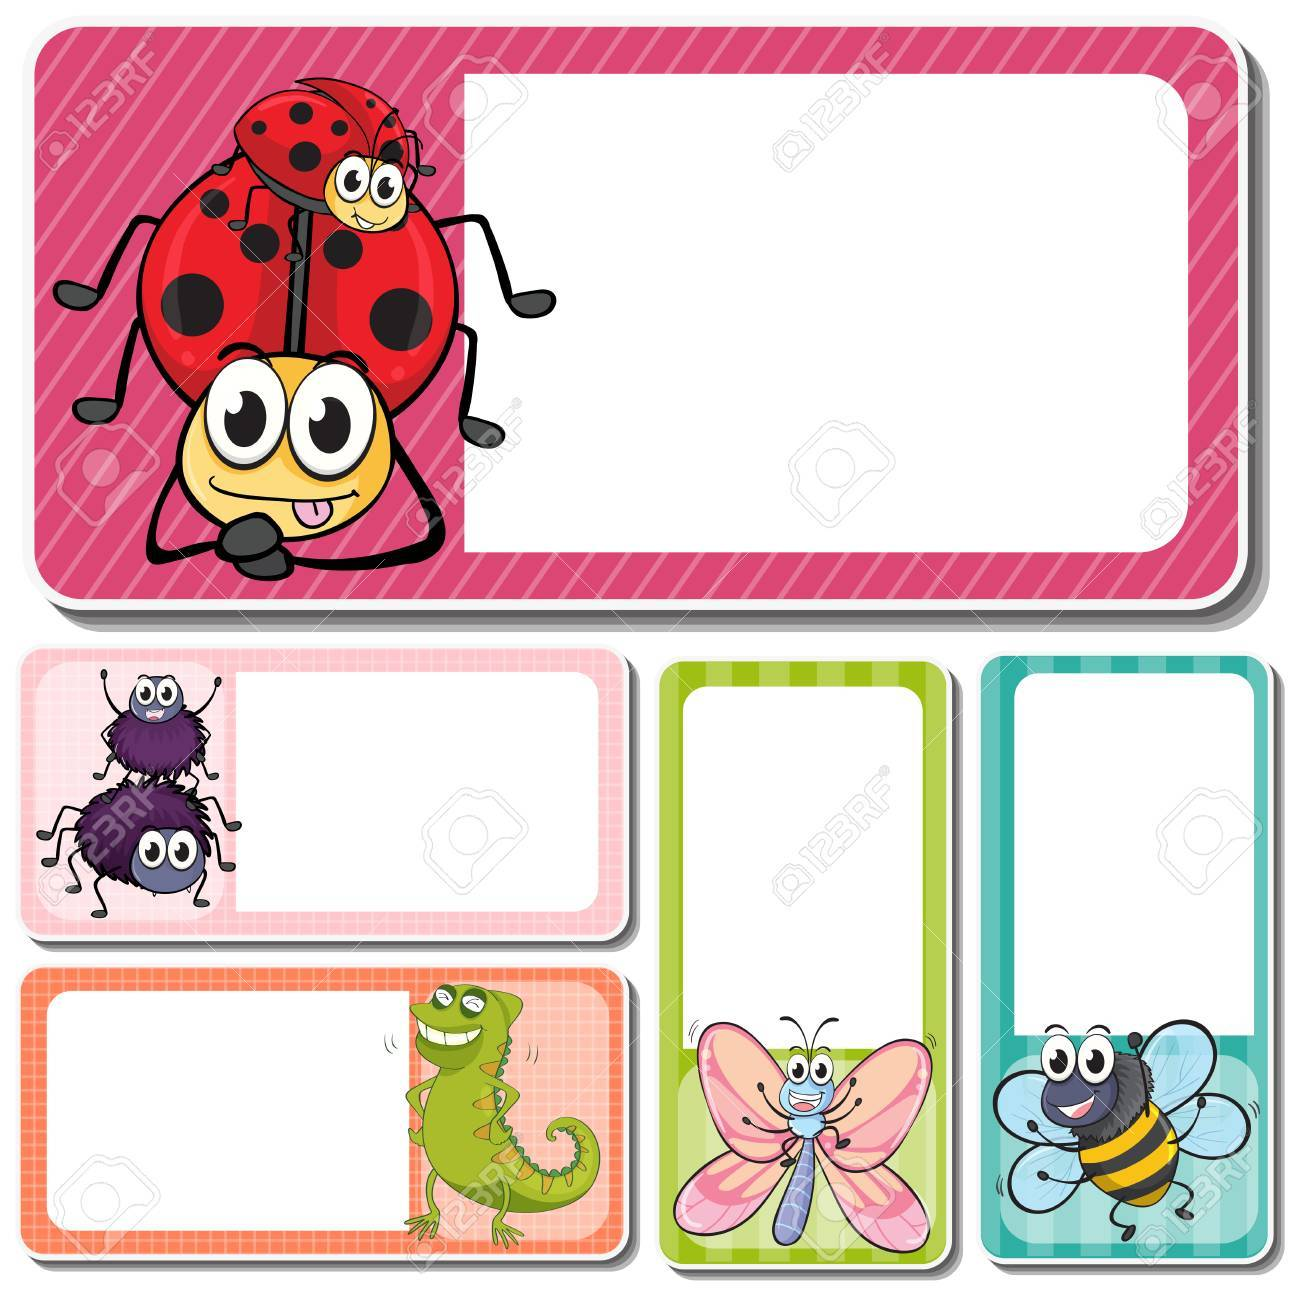 Different Insects On Square Labels Illustration Stock Vector